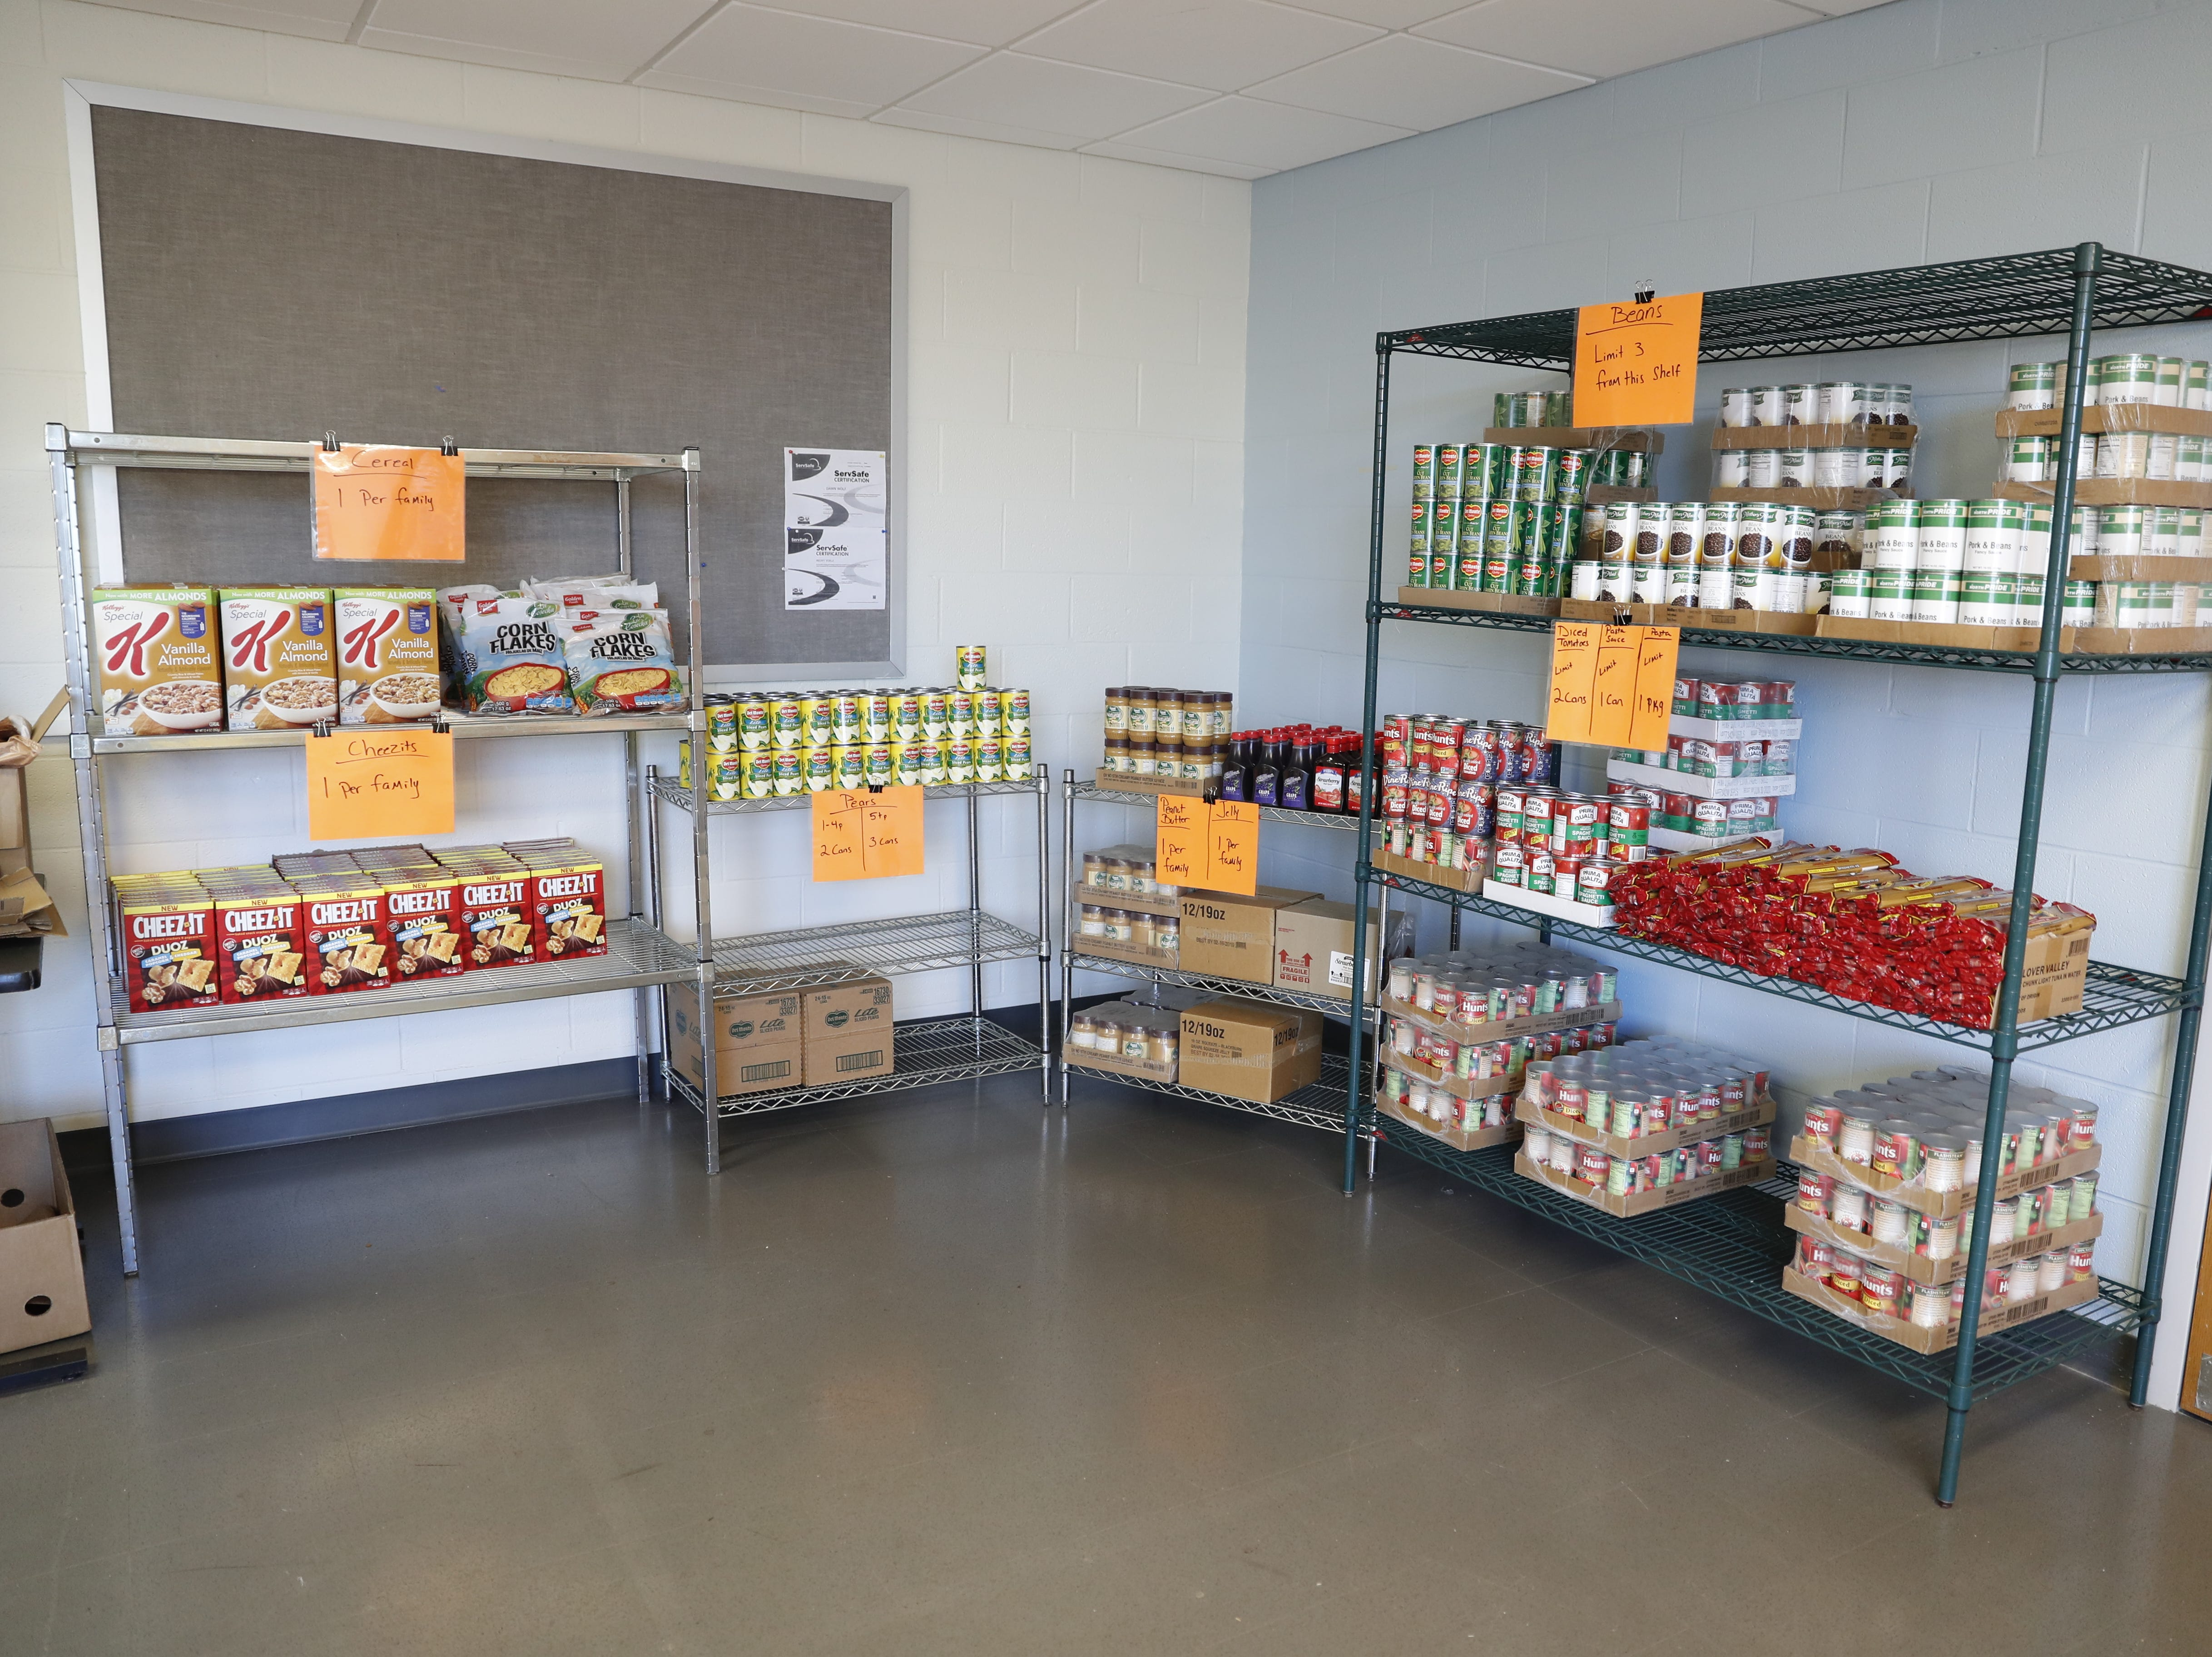 Food stuffs are organize for students during the official opening of Gleaners Hamilton County Cupboard food pantry at Ivy Tech in Noblesville Ind. on Thursday, Sept. 13, 2018. The Joint partnership among Gleaners, Ivy Tech and Goodwill will serve college students who are food-insecure.